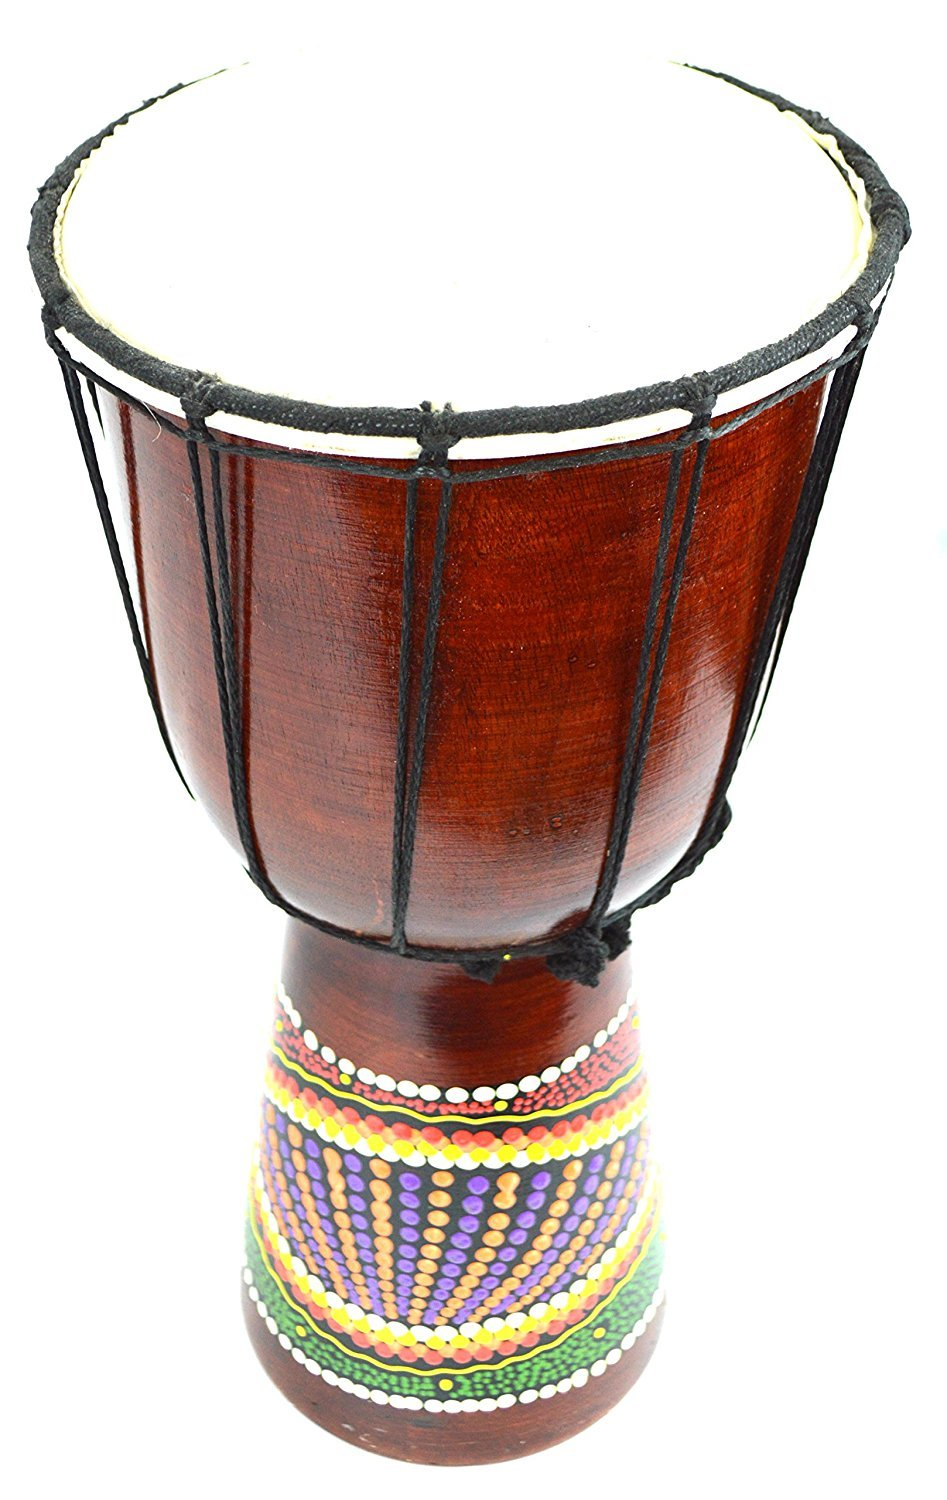 CLEARANCE 12'' DOTTED DJEMBE DRUM BONGO HAND CARVED AFRICAN ABORIGINAL ART DESIGN